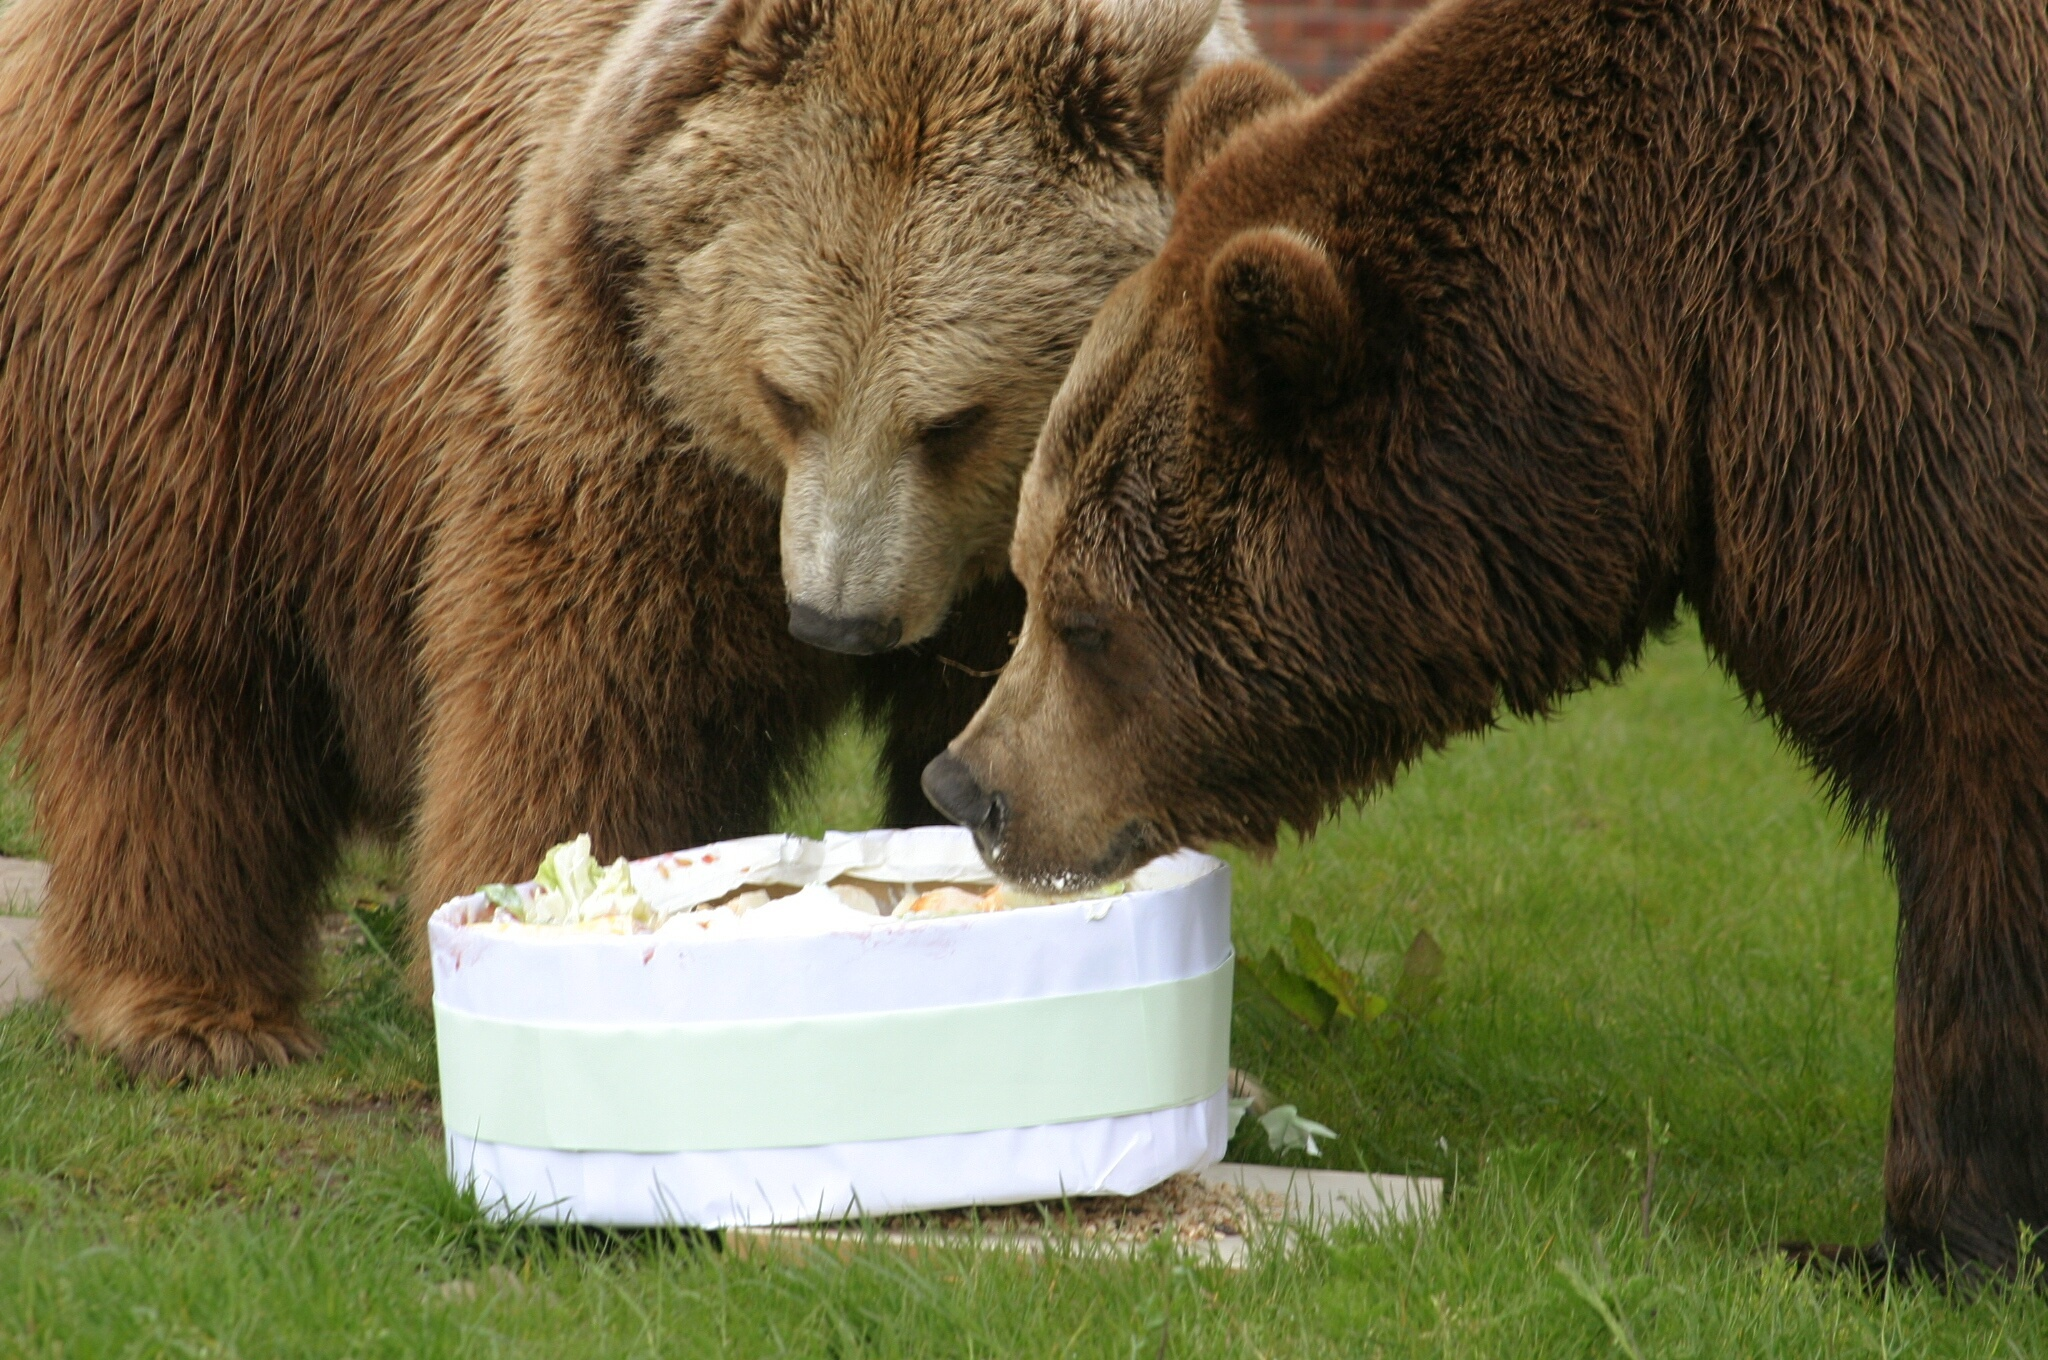 Pictured at Camperdown in 2006, Comet (right), enjoyed a cake for his 20th birthday, with fellow bear Star hoping to get some scraps.